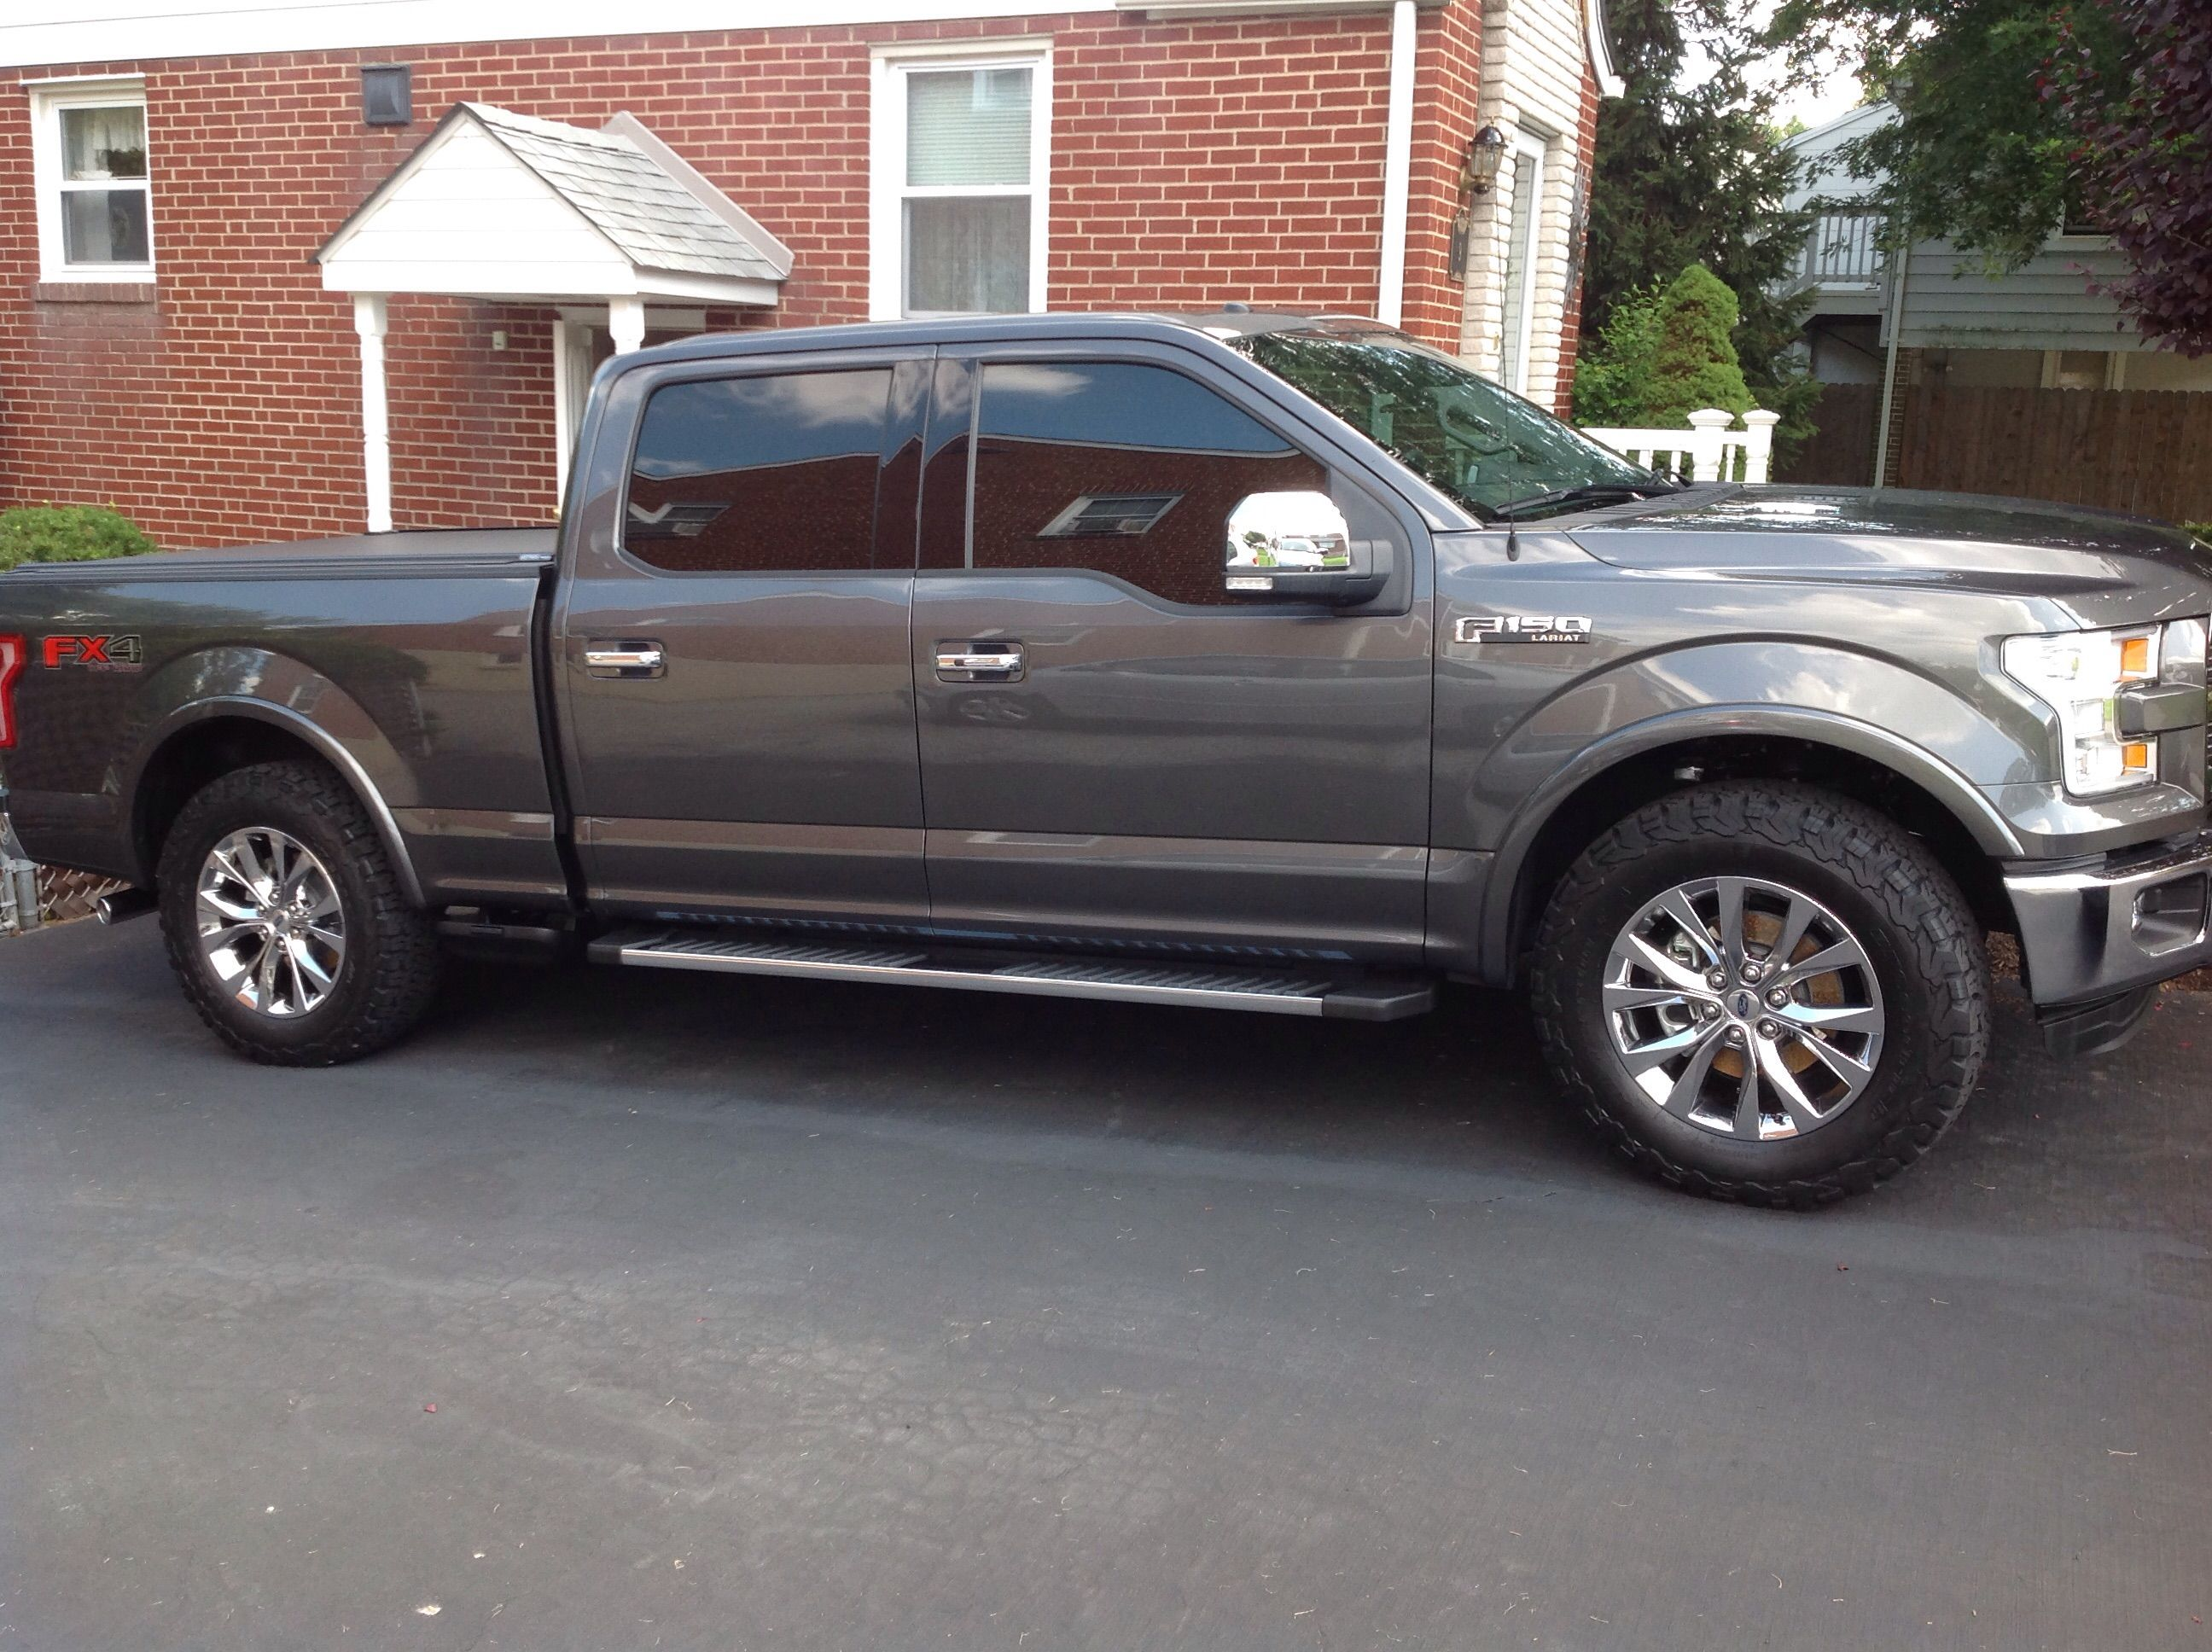 Largest Tire Size On Factory 20 S With No Level Image Jpg Tyre Size Ford F150 F150